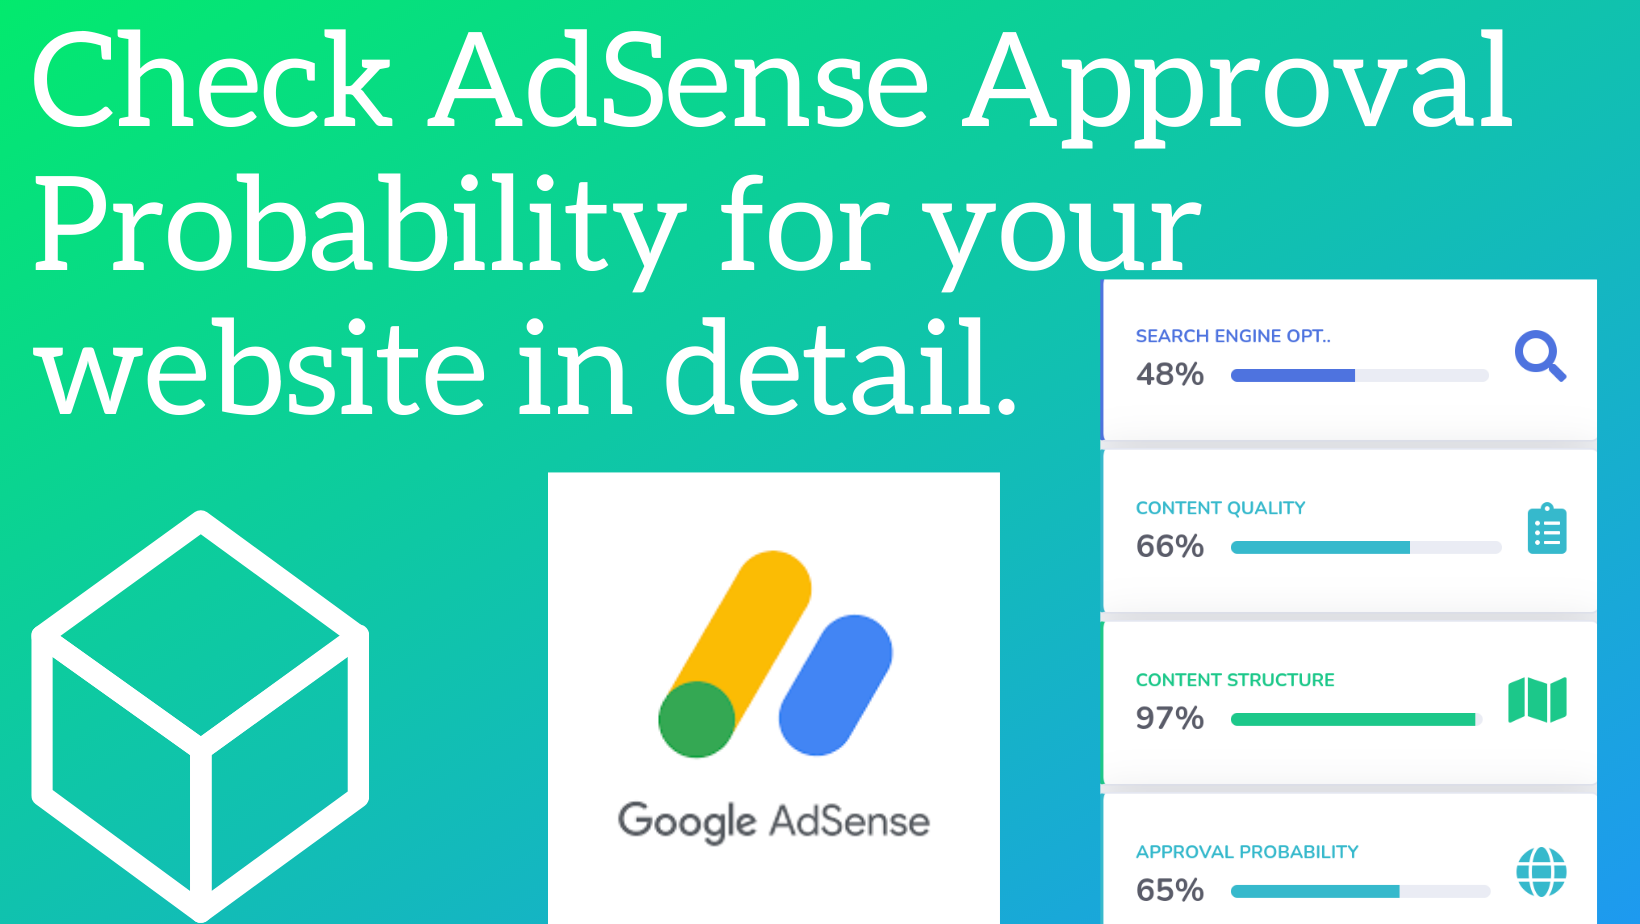 Check AdSense Approval Probability for your website